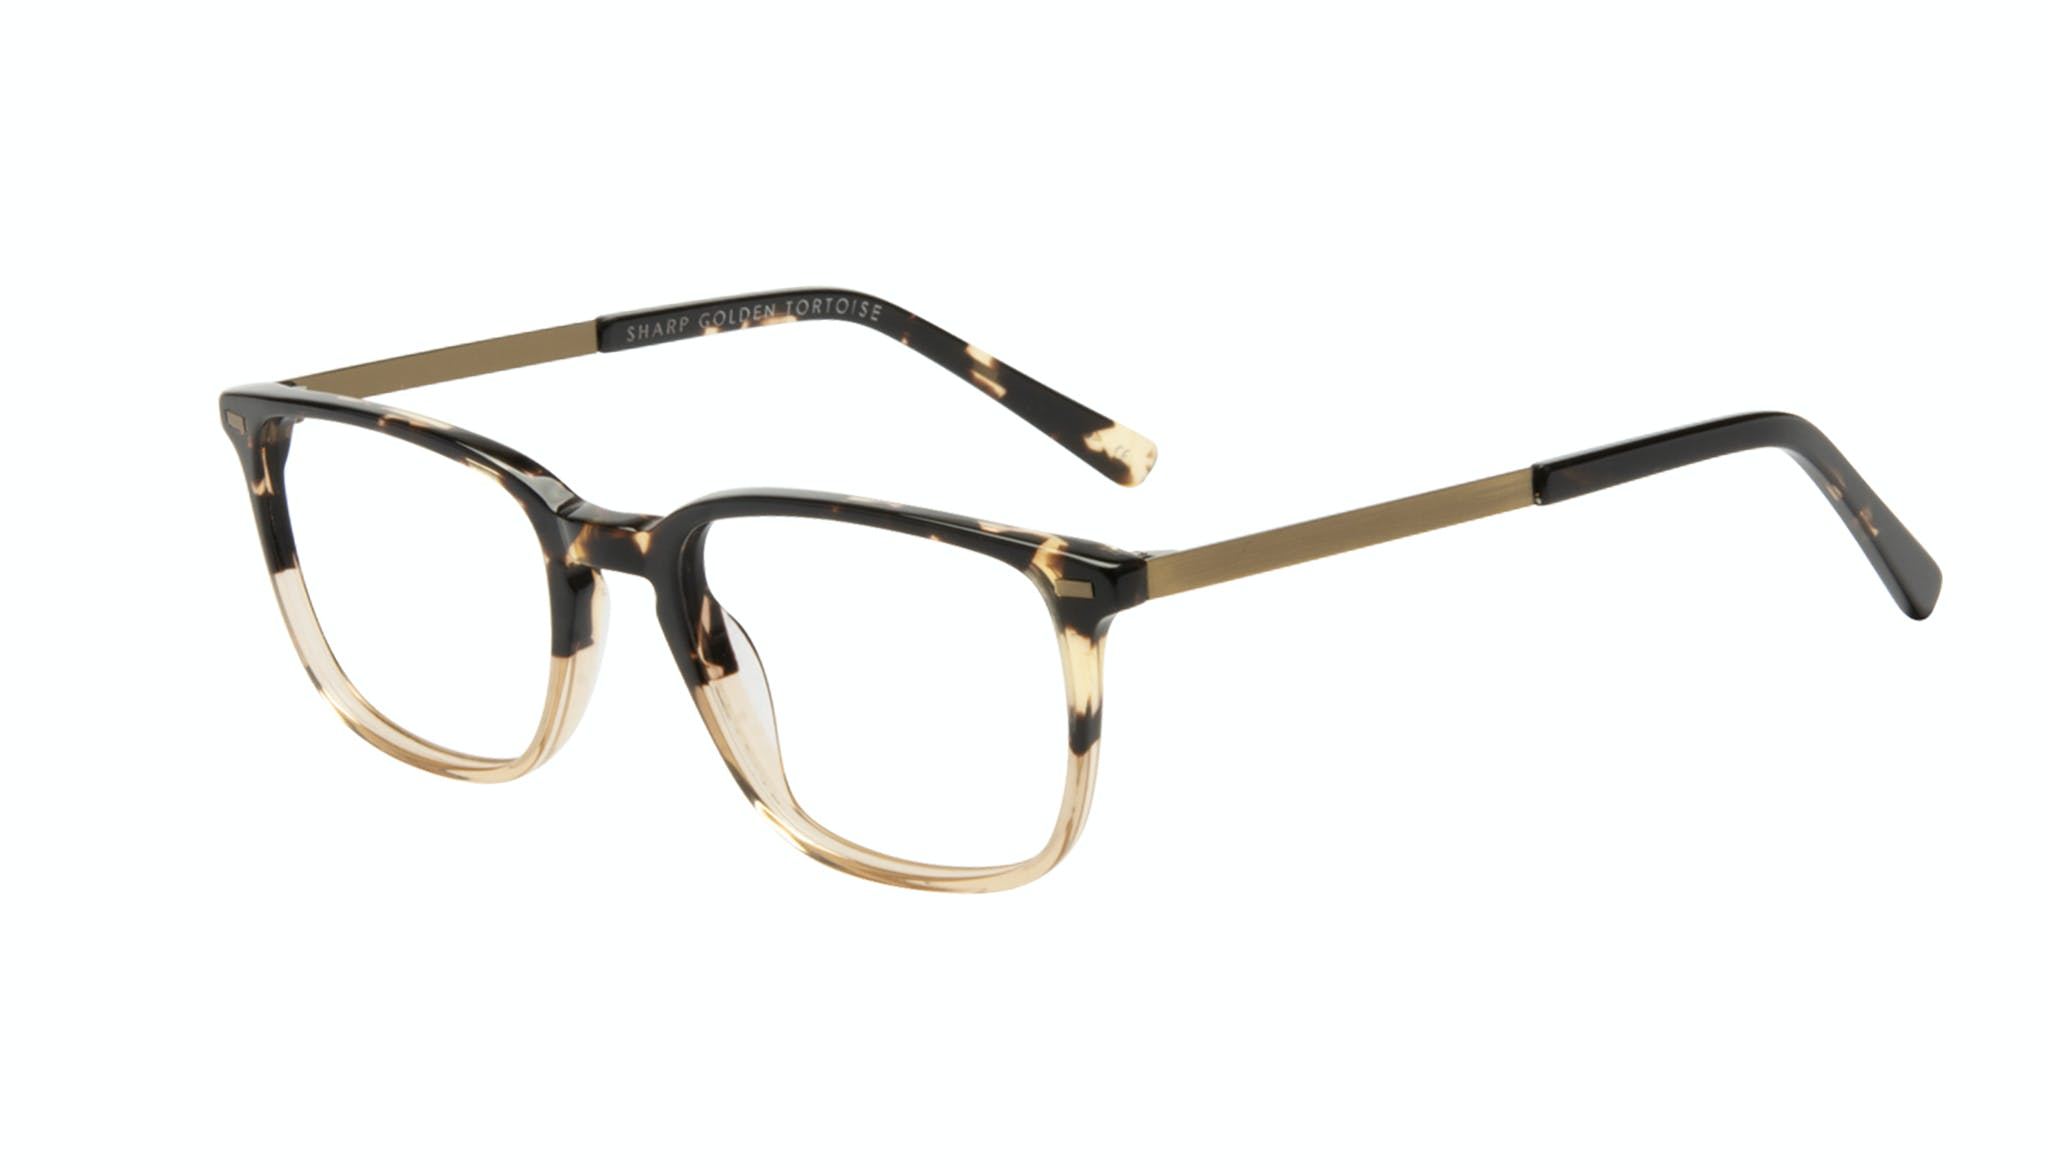 Affordable Fashion Glasses Rectangle Eyeglasses Men Sharp Golden Tortoise Tilt